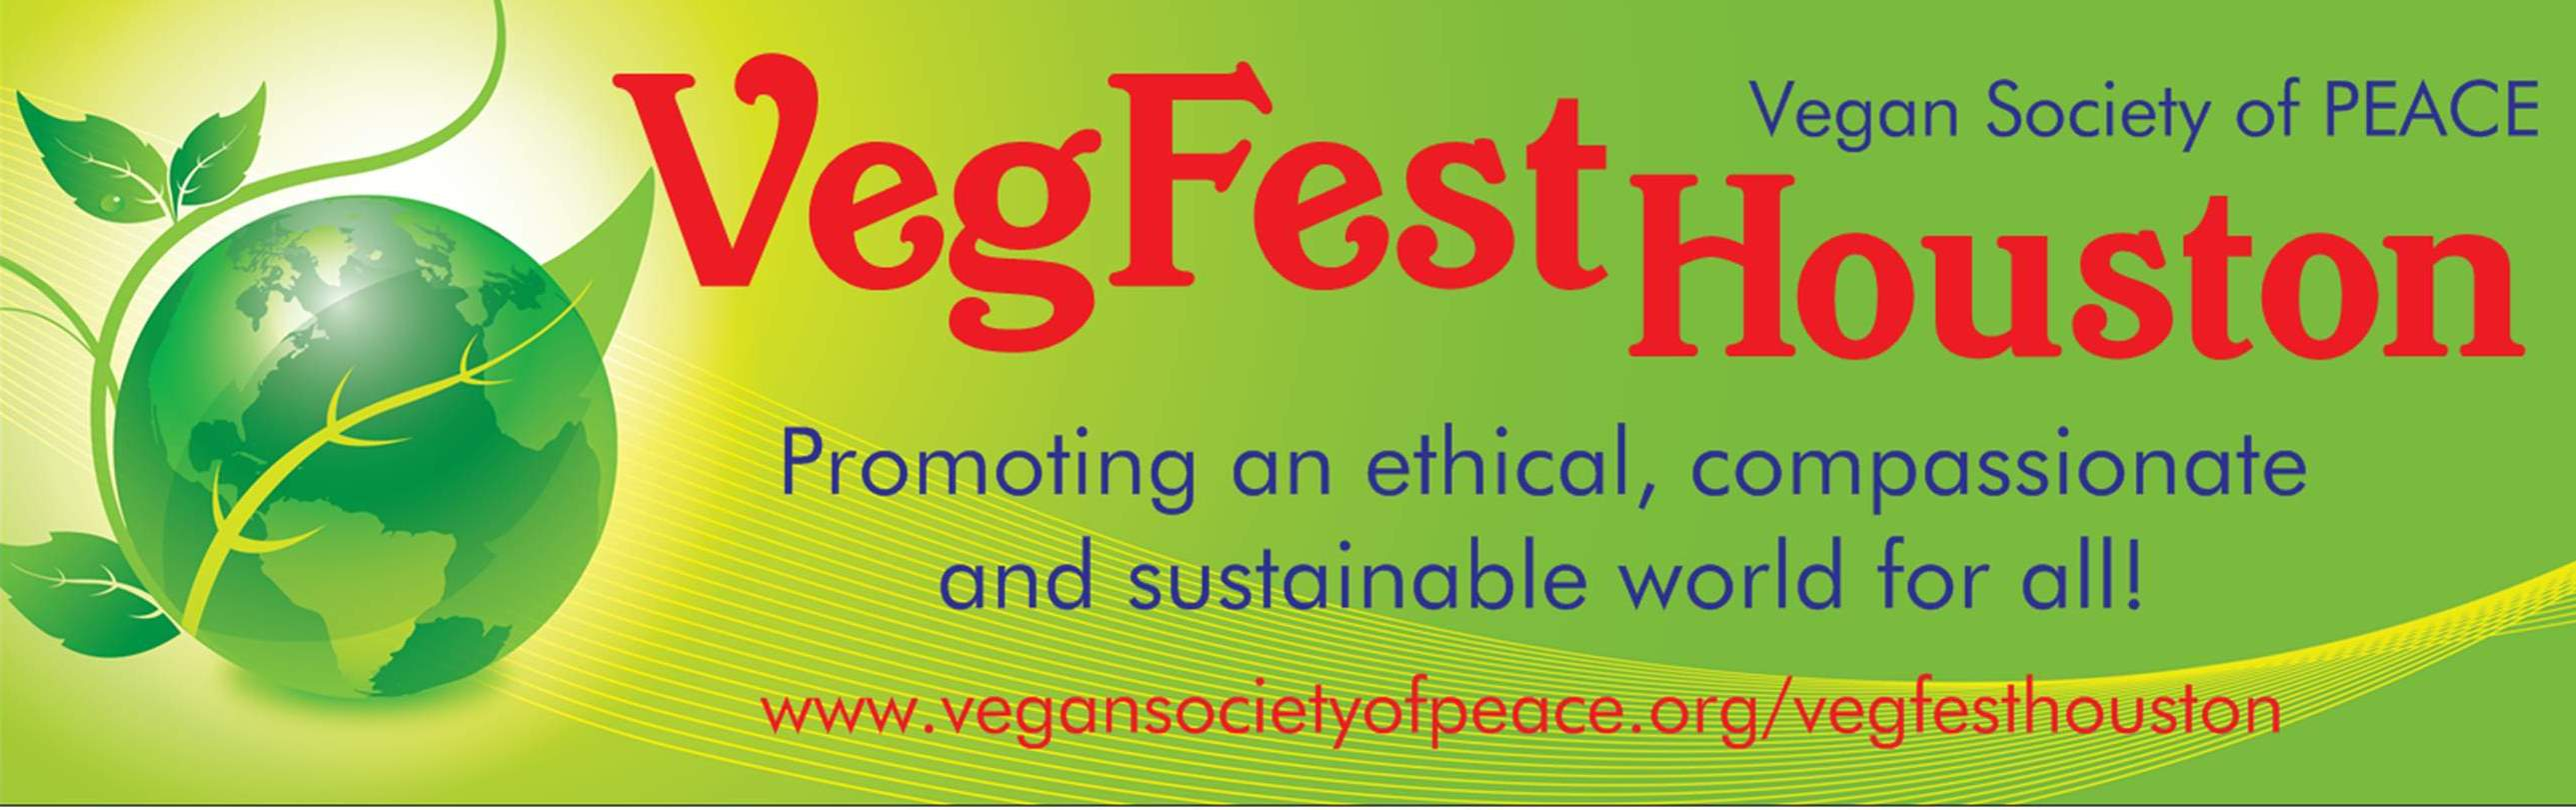 VegFest Houston Vegan Society of PEACE